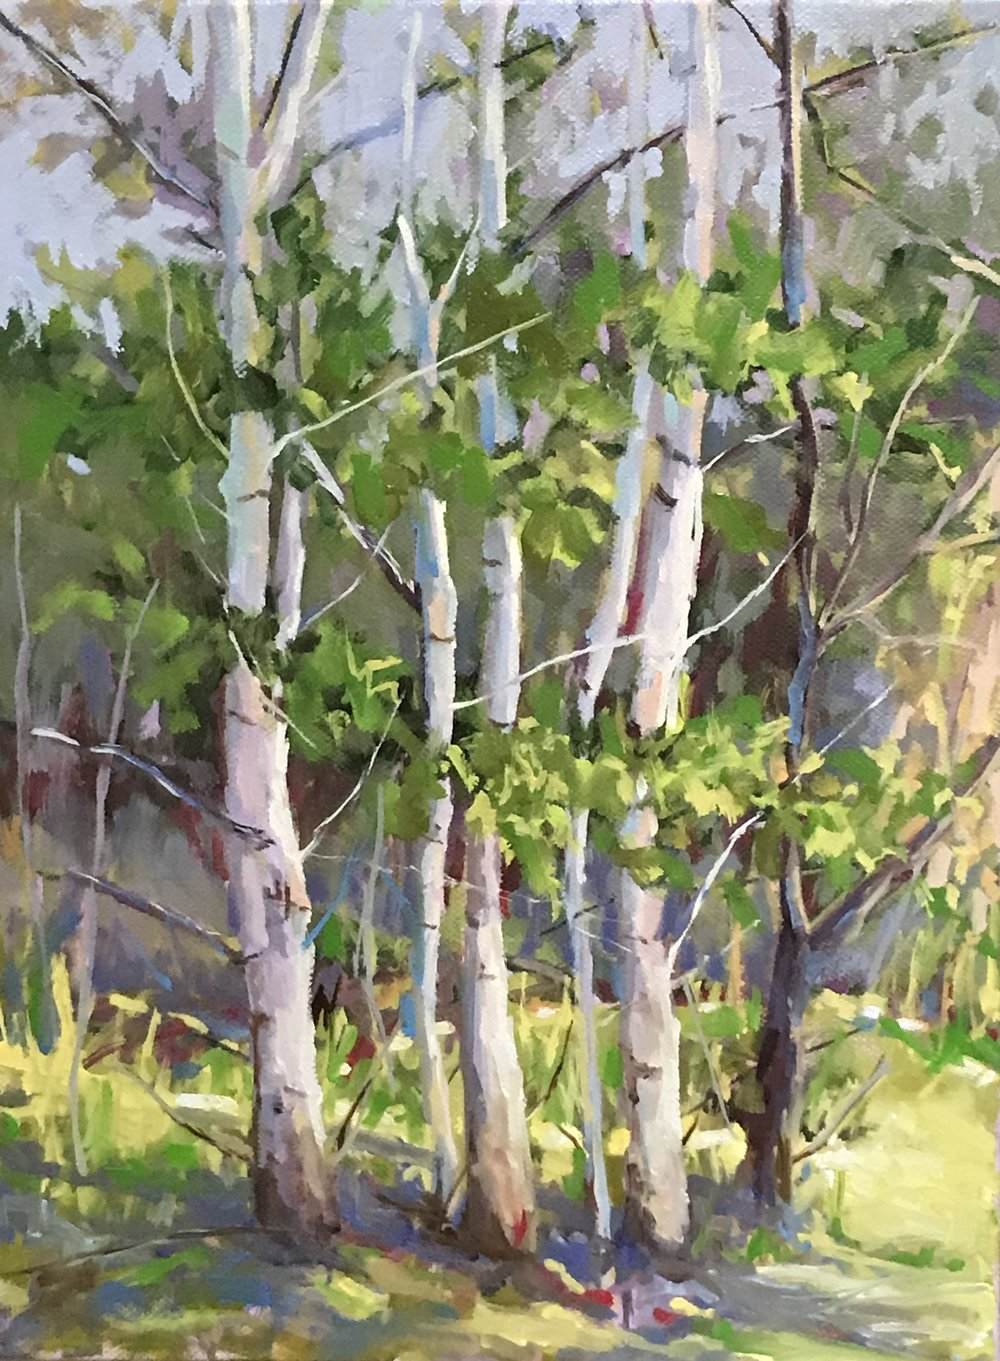 Janette Gray, Birch